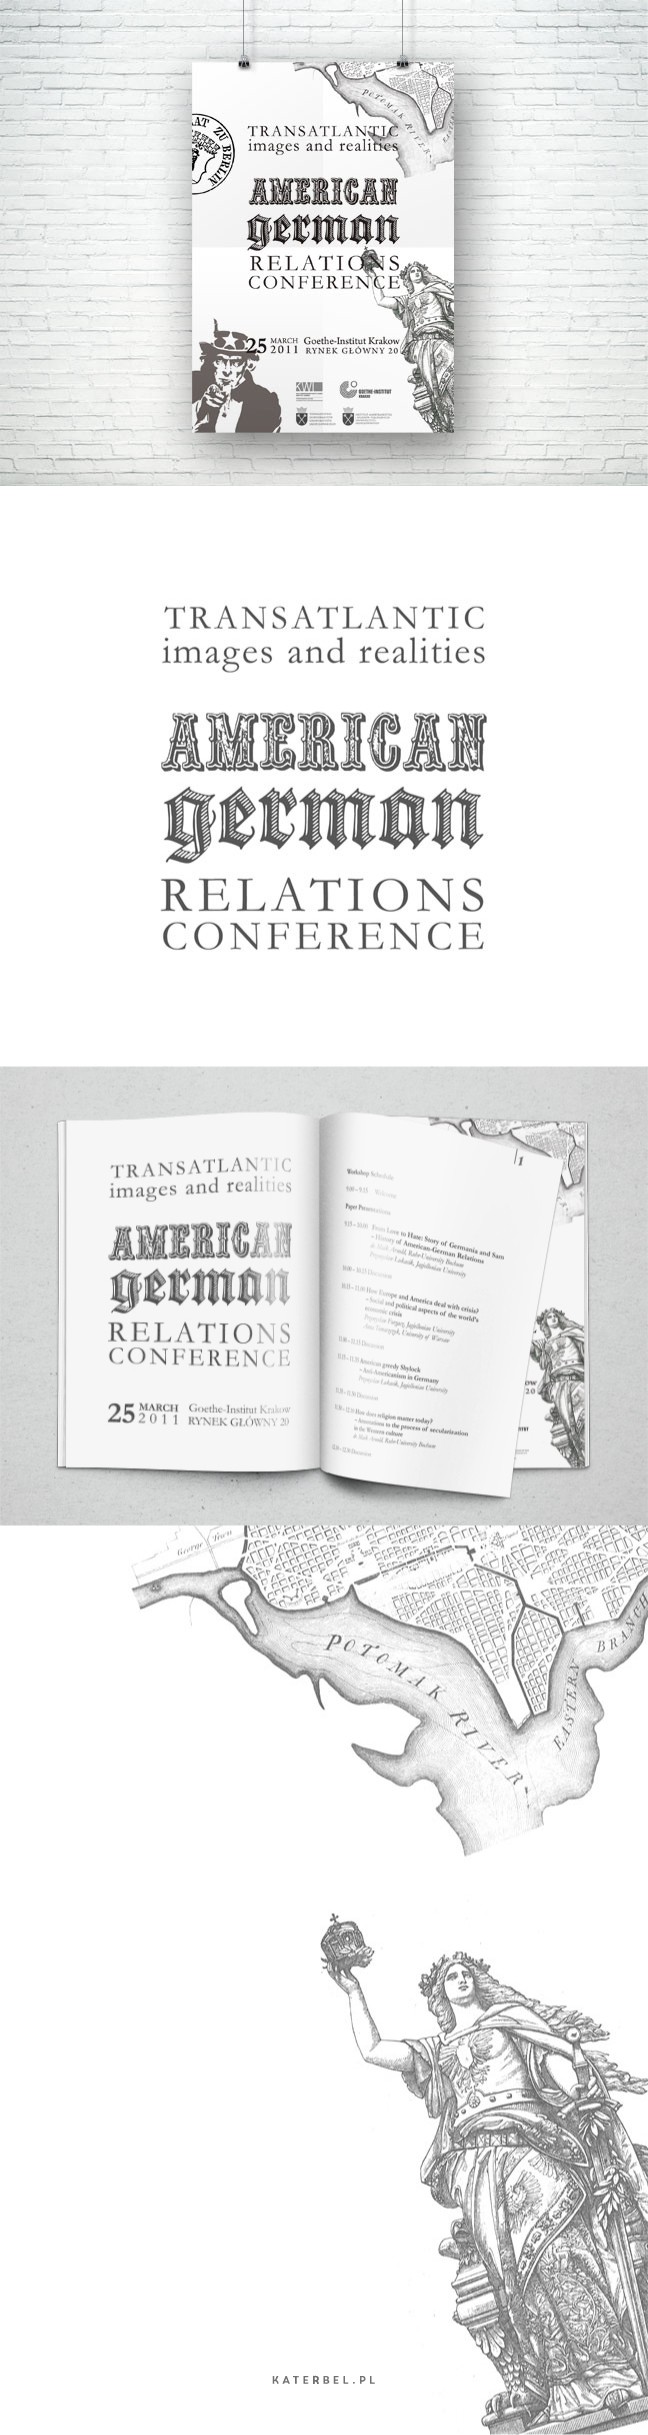 conference_by_katerbel.pl